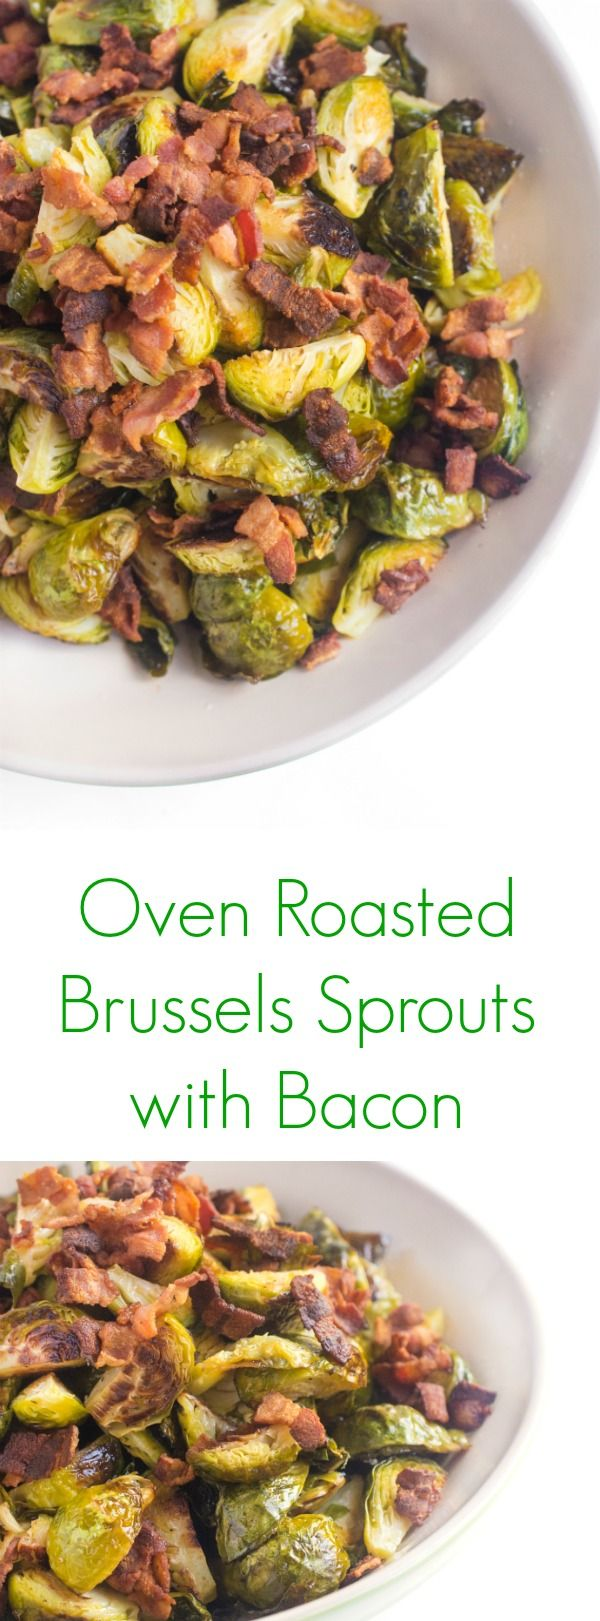 These Oven Roasted Brussels Sprouts with Bacon are a naturally gluten free, paelo-friendly side dish that make the perfect accompany to any dish!